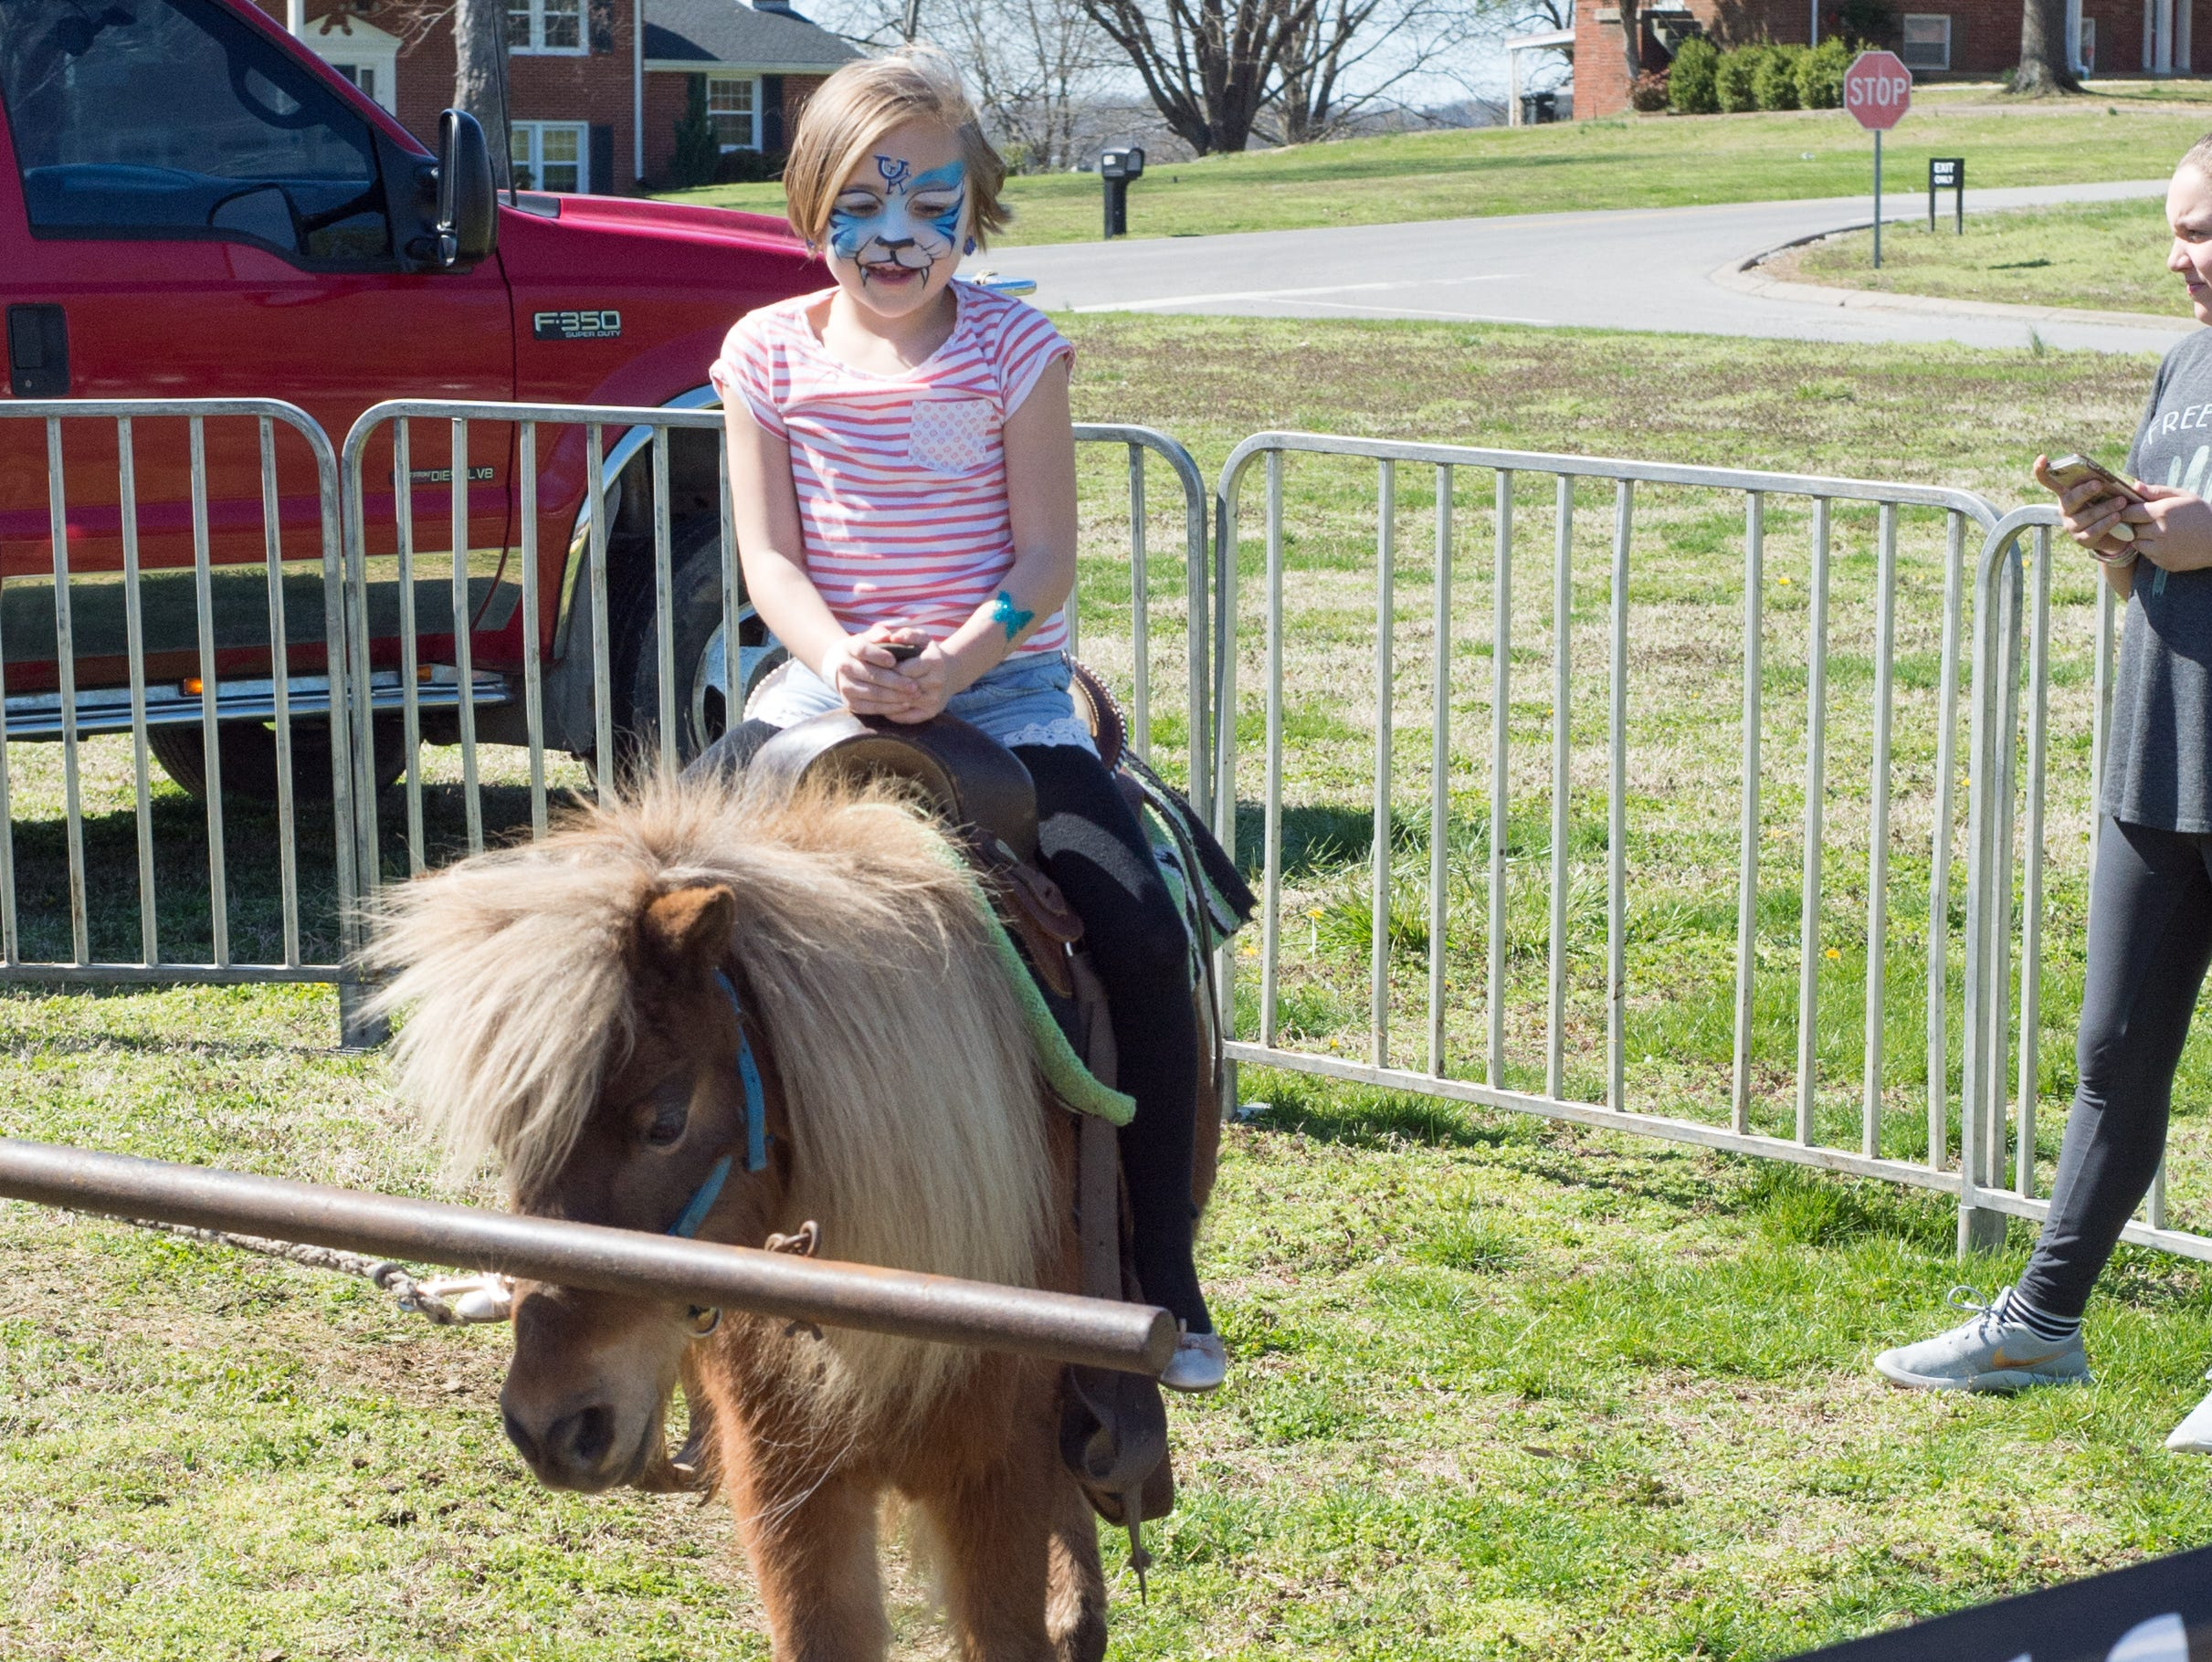 Pony rides add fun to the Mid TN Babies and Beyond Fest and Be Healthy Hendersonville Expo Presented by Hendersonville Area Chamber of Commerce at Hendersonville High School on Saturday, March 16.